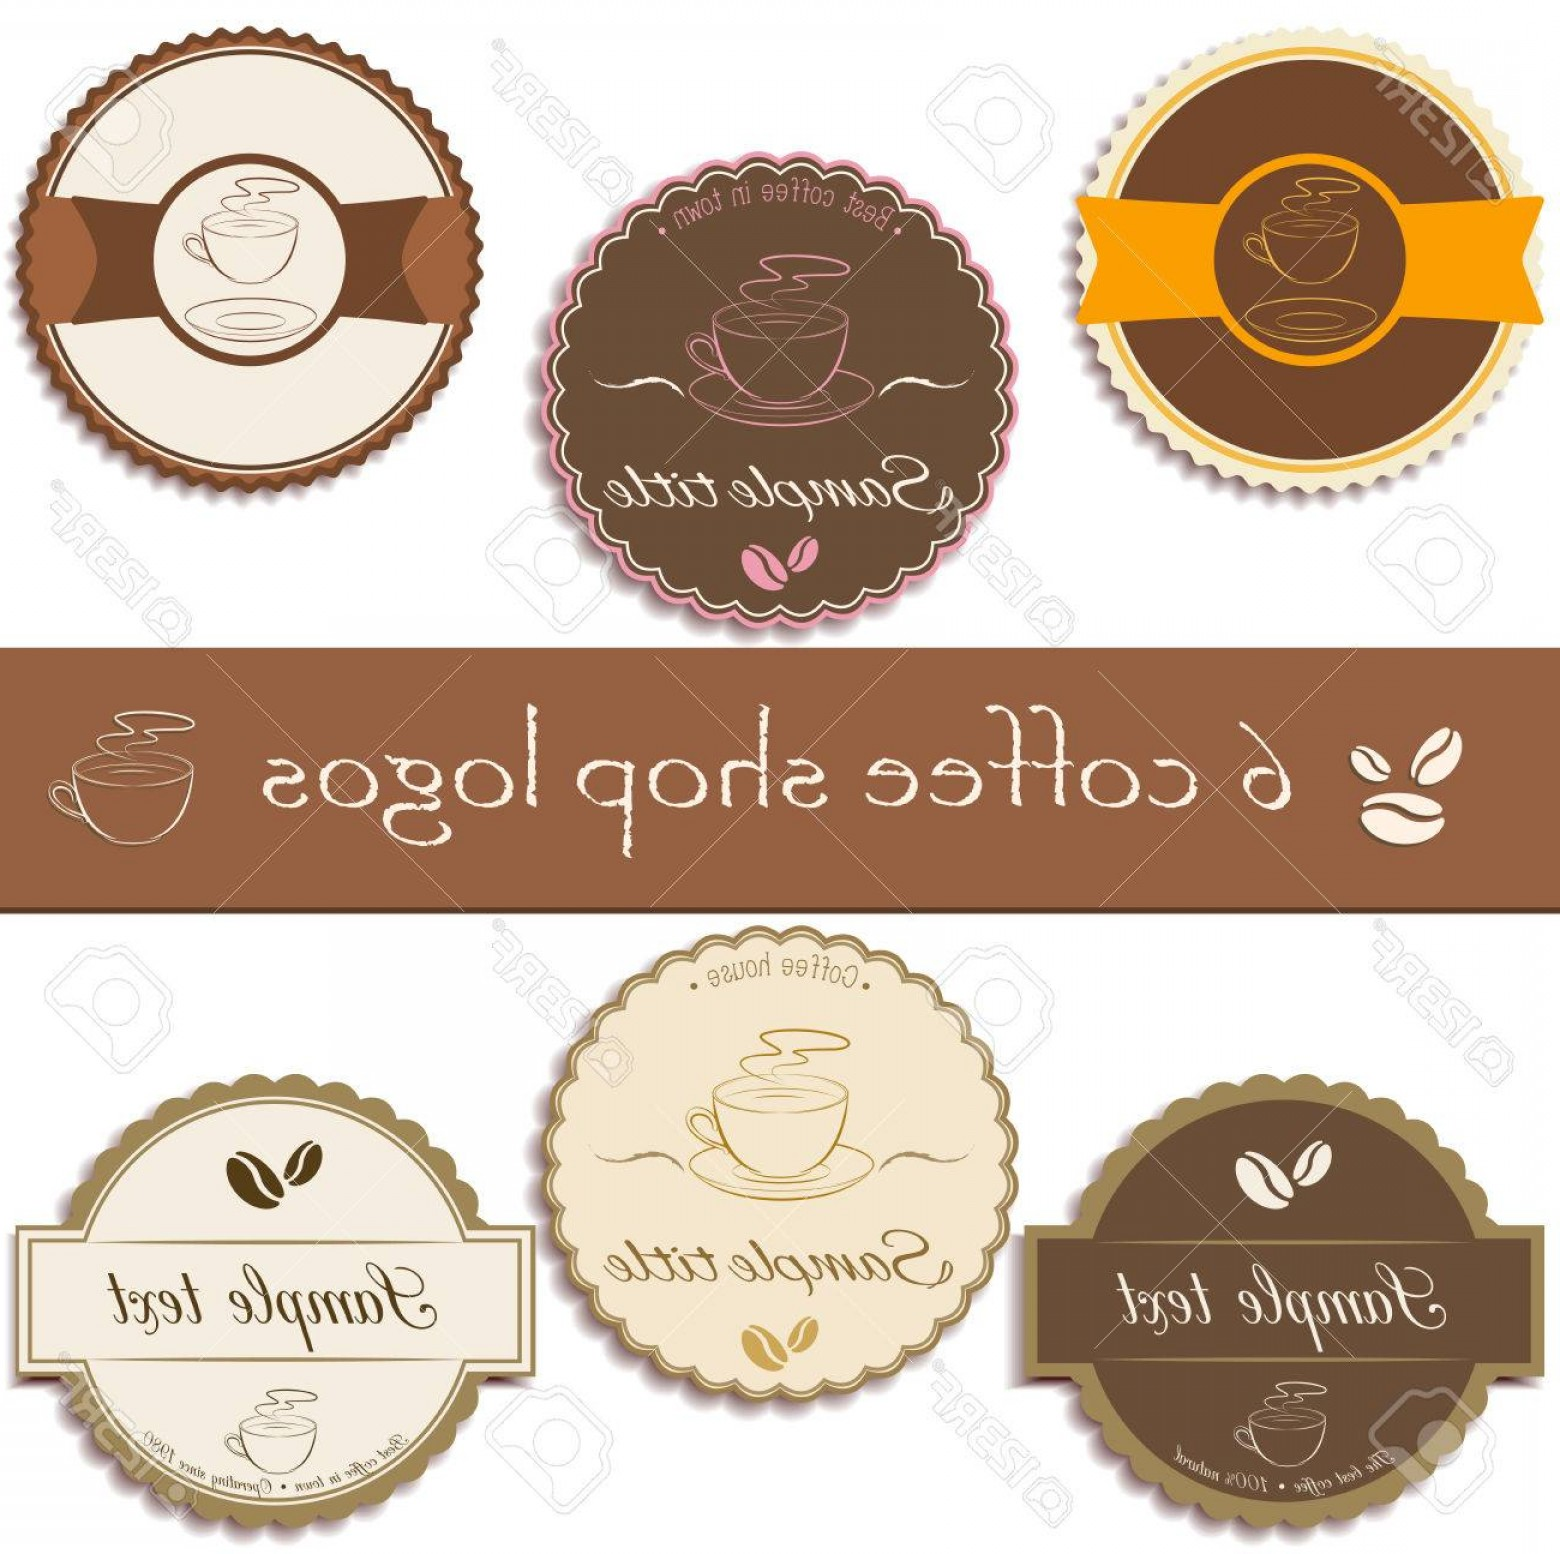 UPS Logo Vector: Photostock Vector Set Of Premium Coffee Shop Logos Badges Logos In Retro Style Business Identity Templates Mock Ups Ve